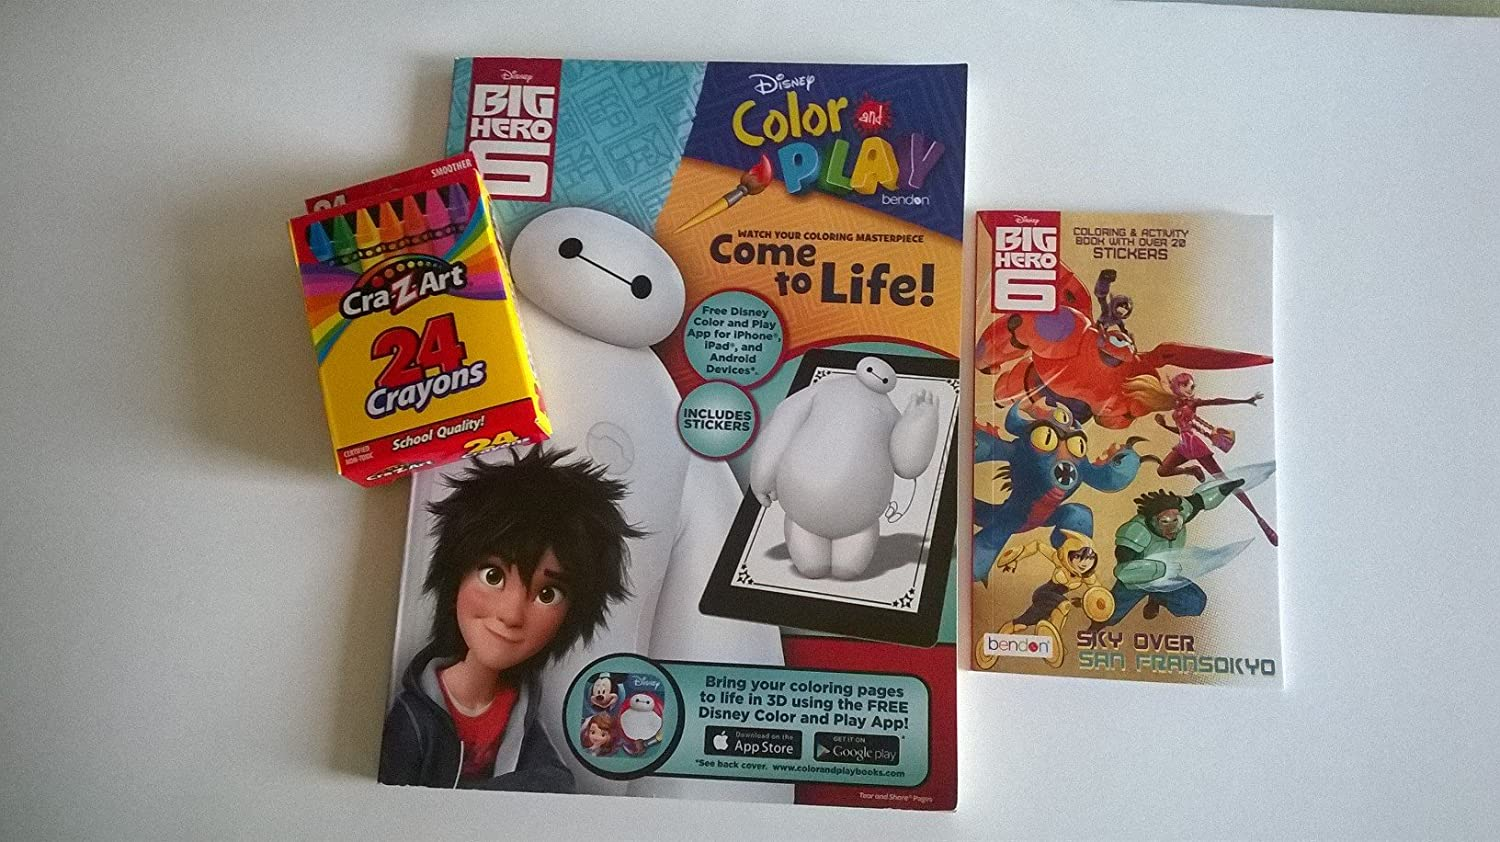 Amazon BIG HERO 6 Coloring Activity 3 PC Bundle Includes 1 Disney Color Play Book With Stickers1 Mini